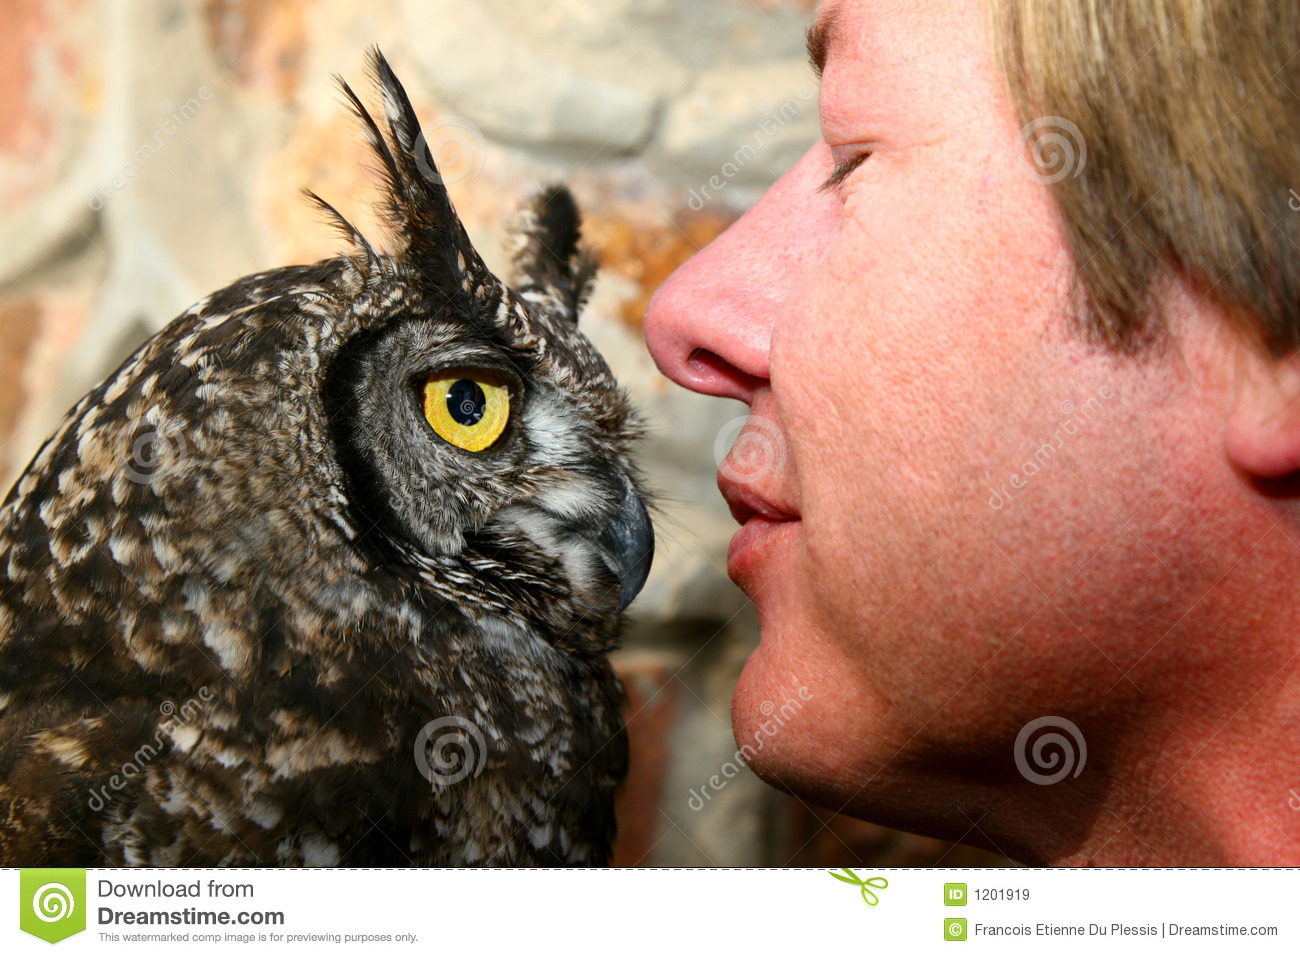 Owl and Trainer